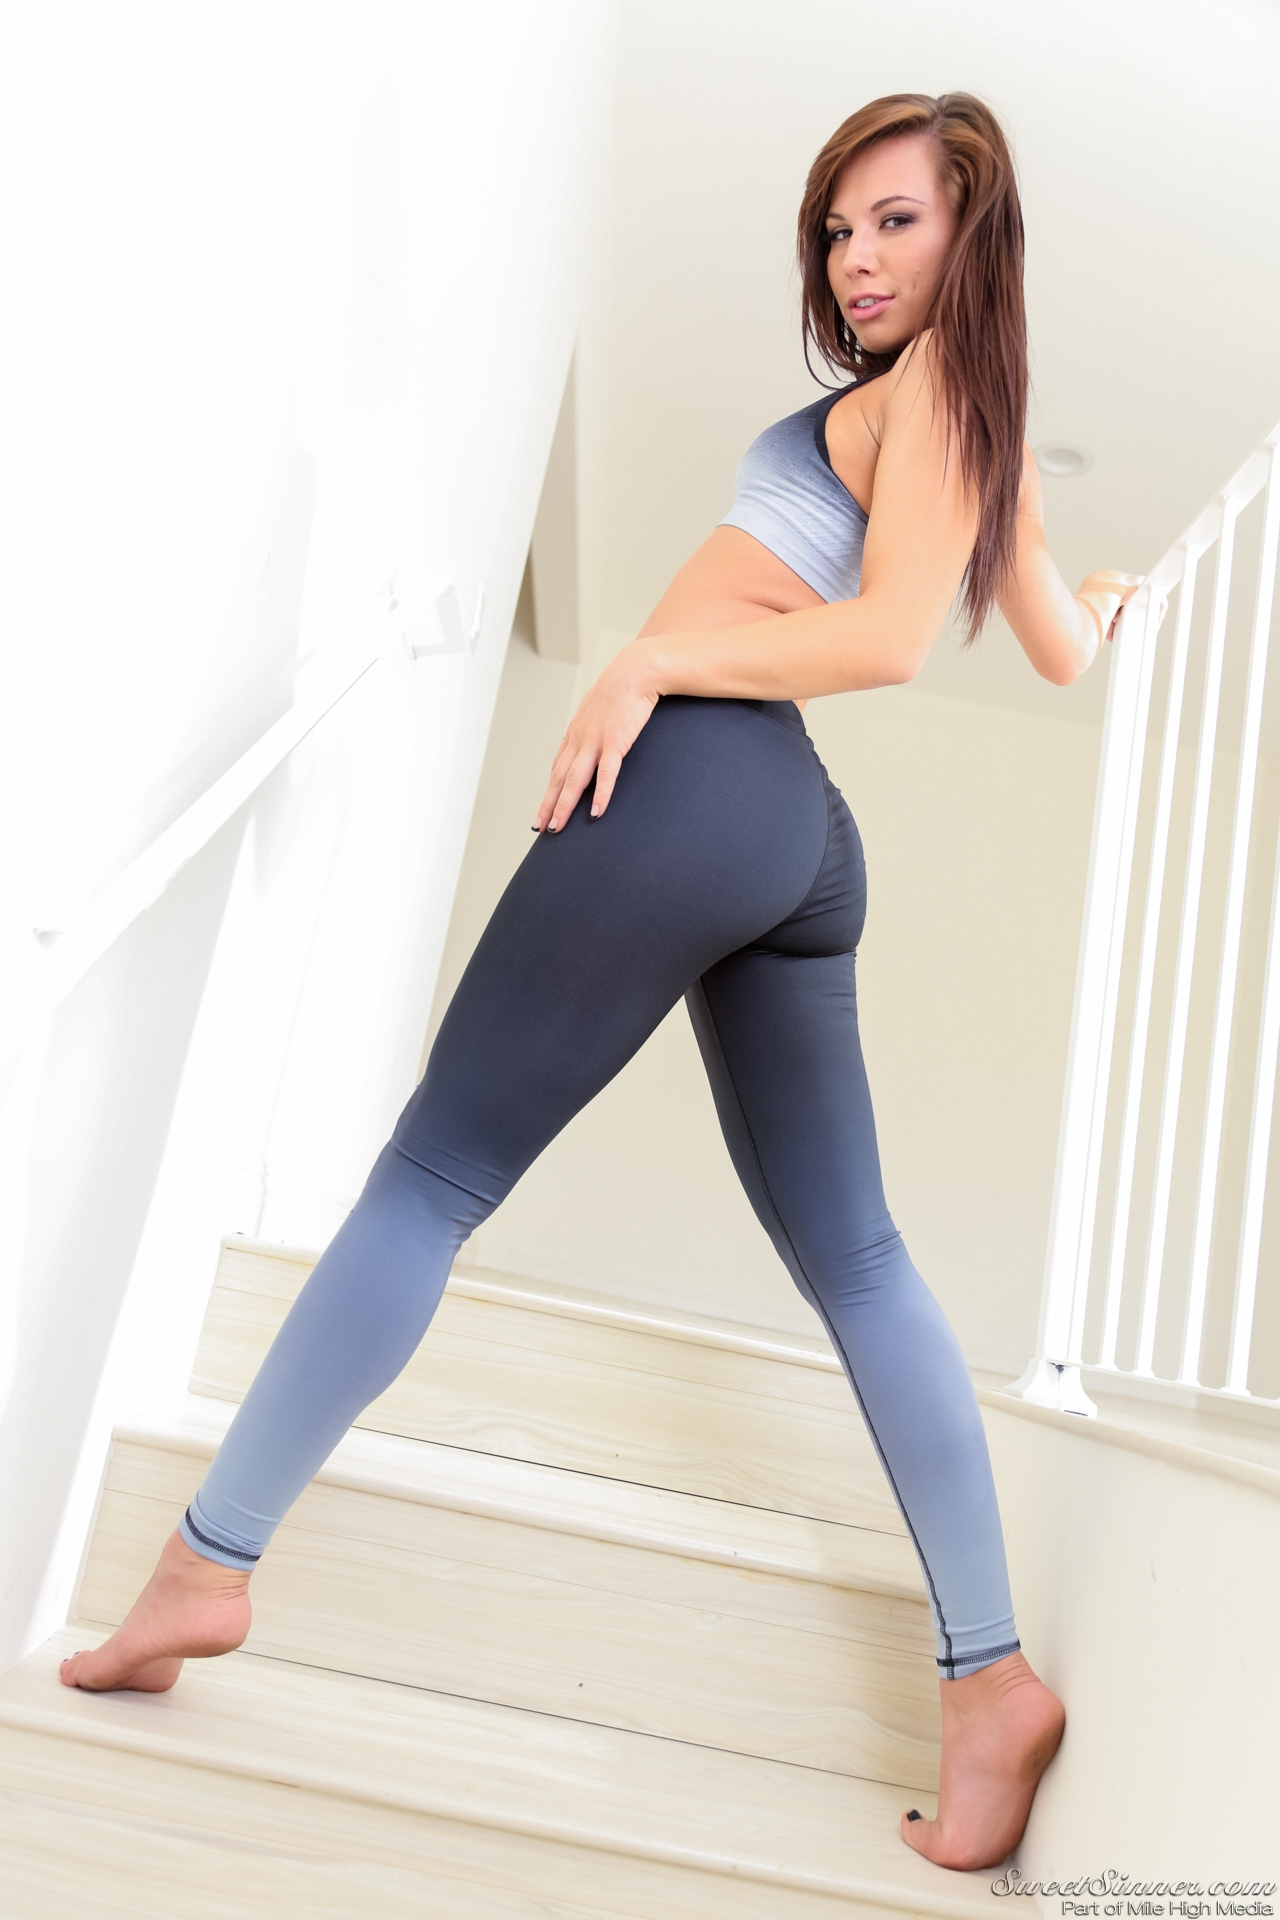 Hot girls in yoga pants fuck monster cock any more